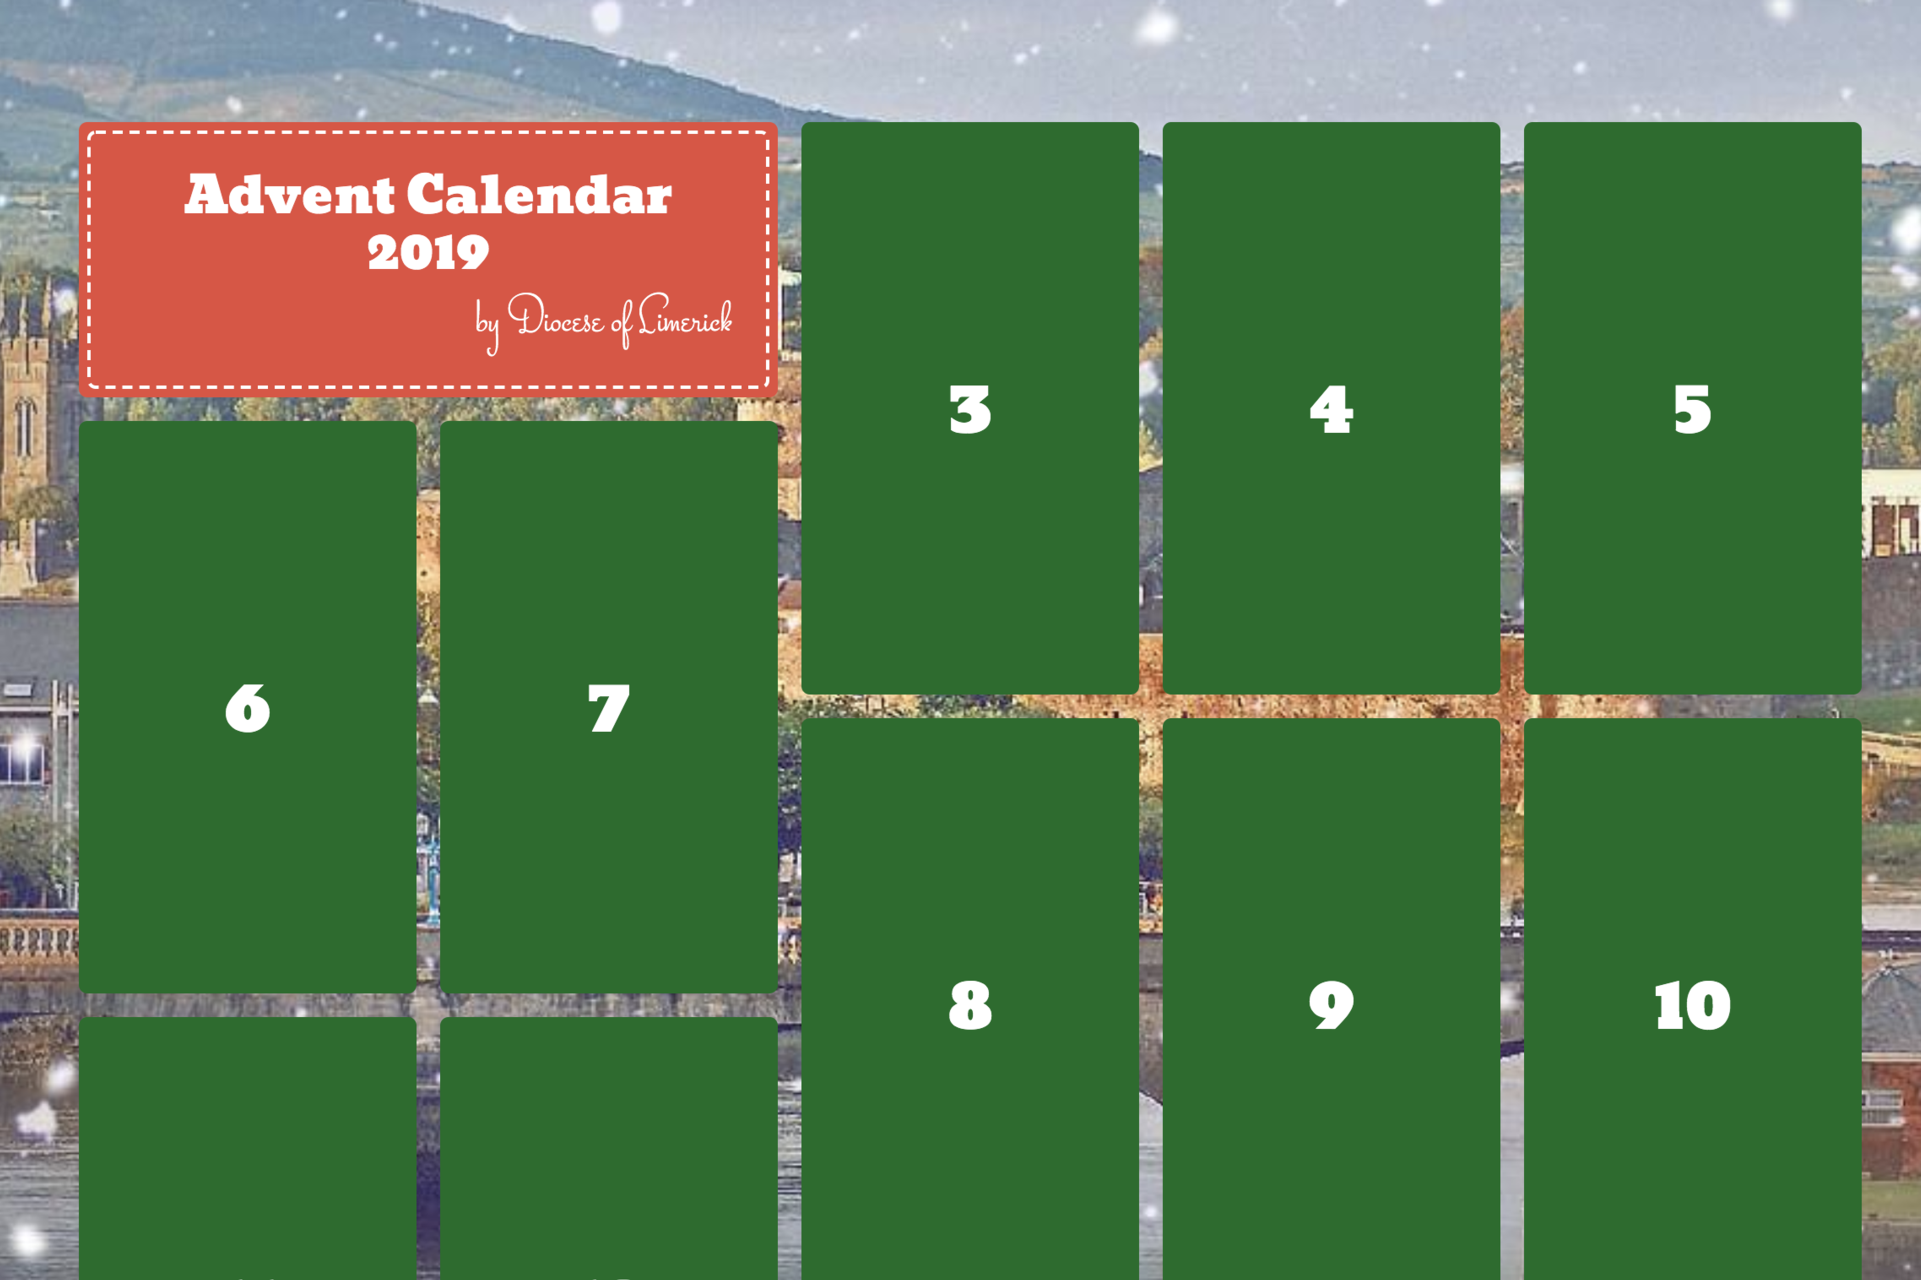 Our Advent Calendar is now live!